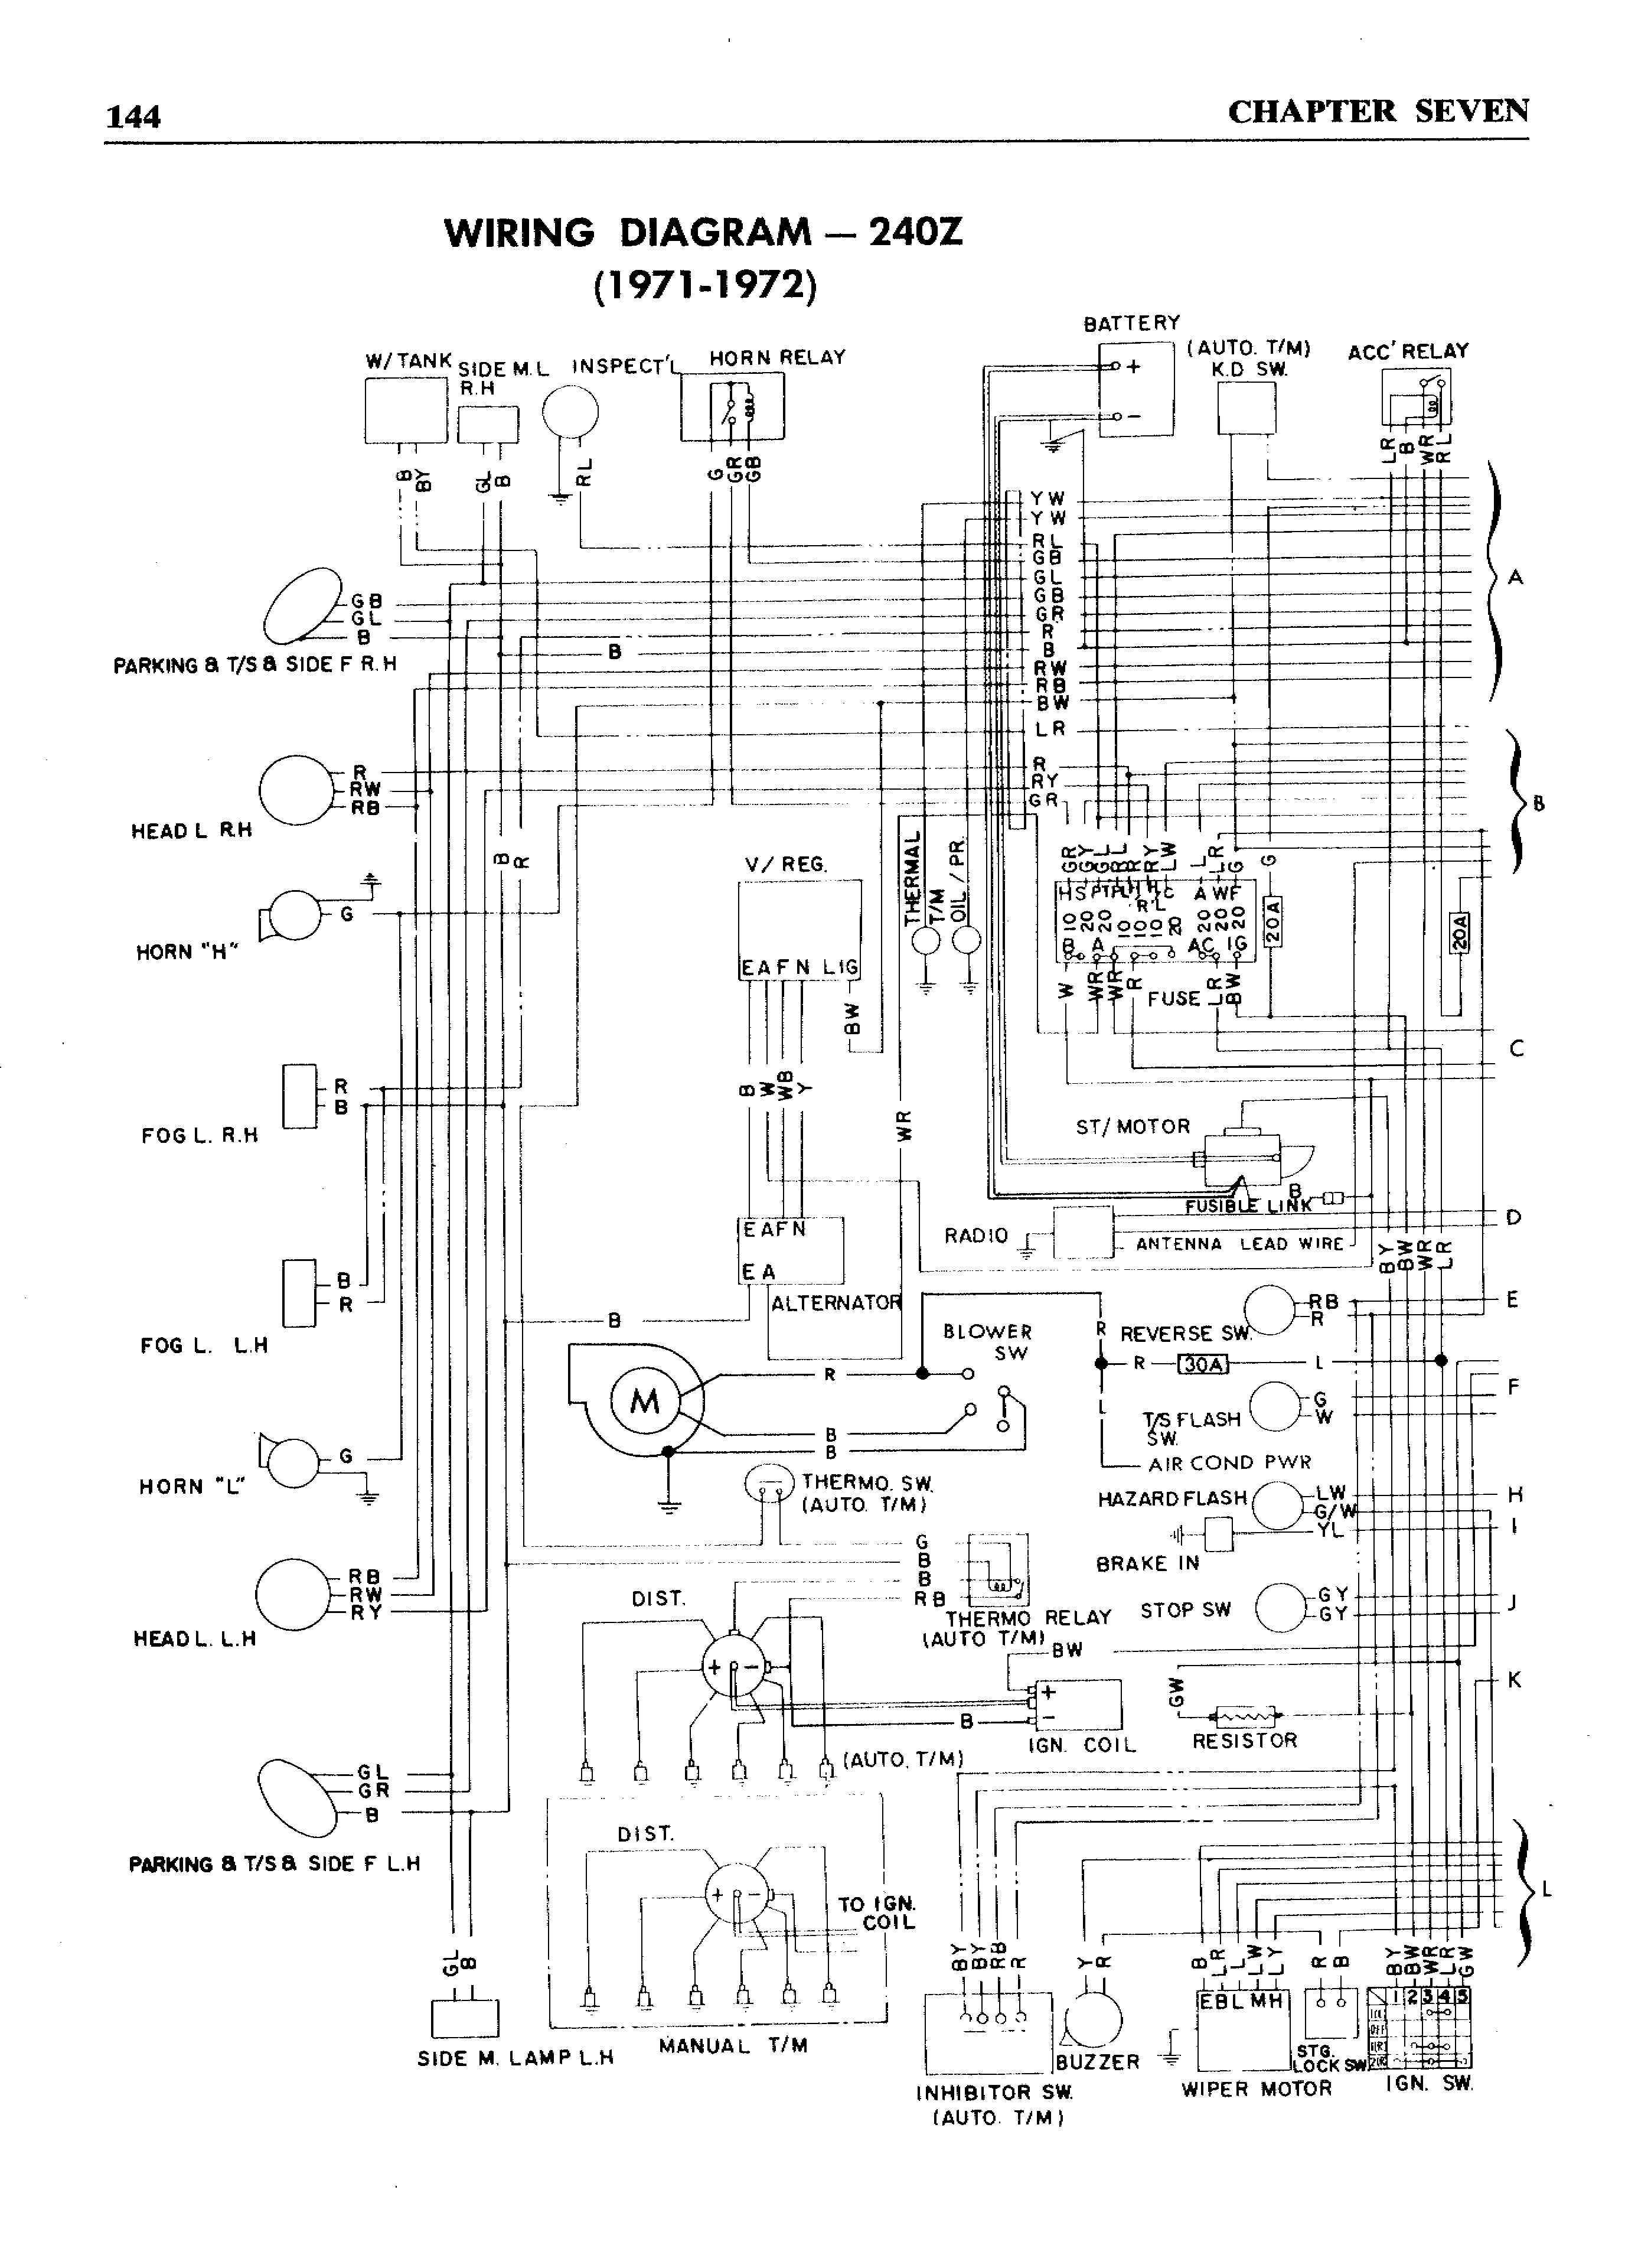 1982 280zx Wiring Diagram Auto Electrical 240z 19 Images